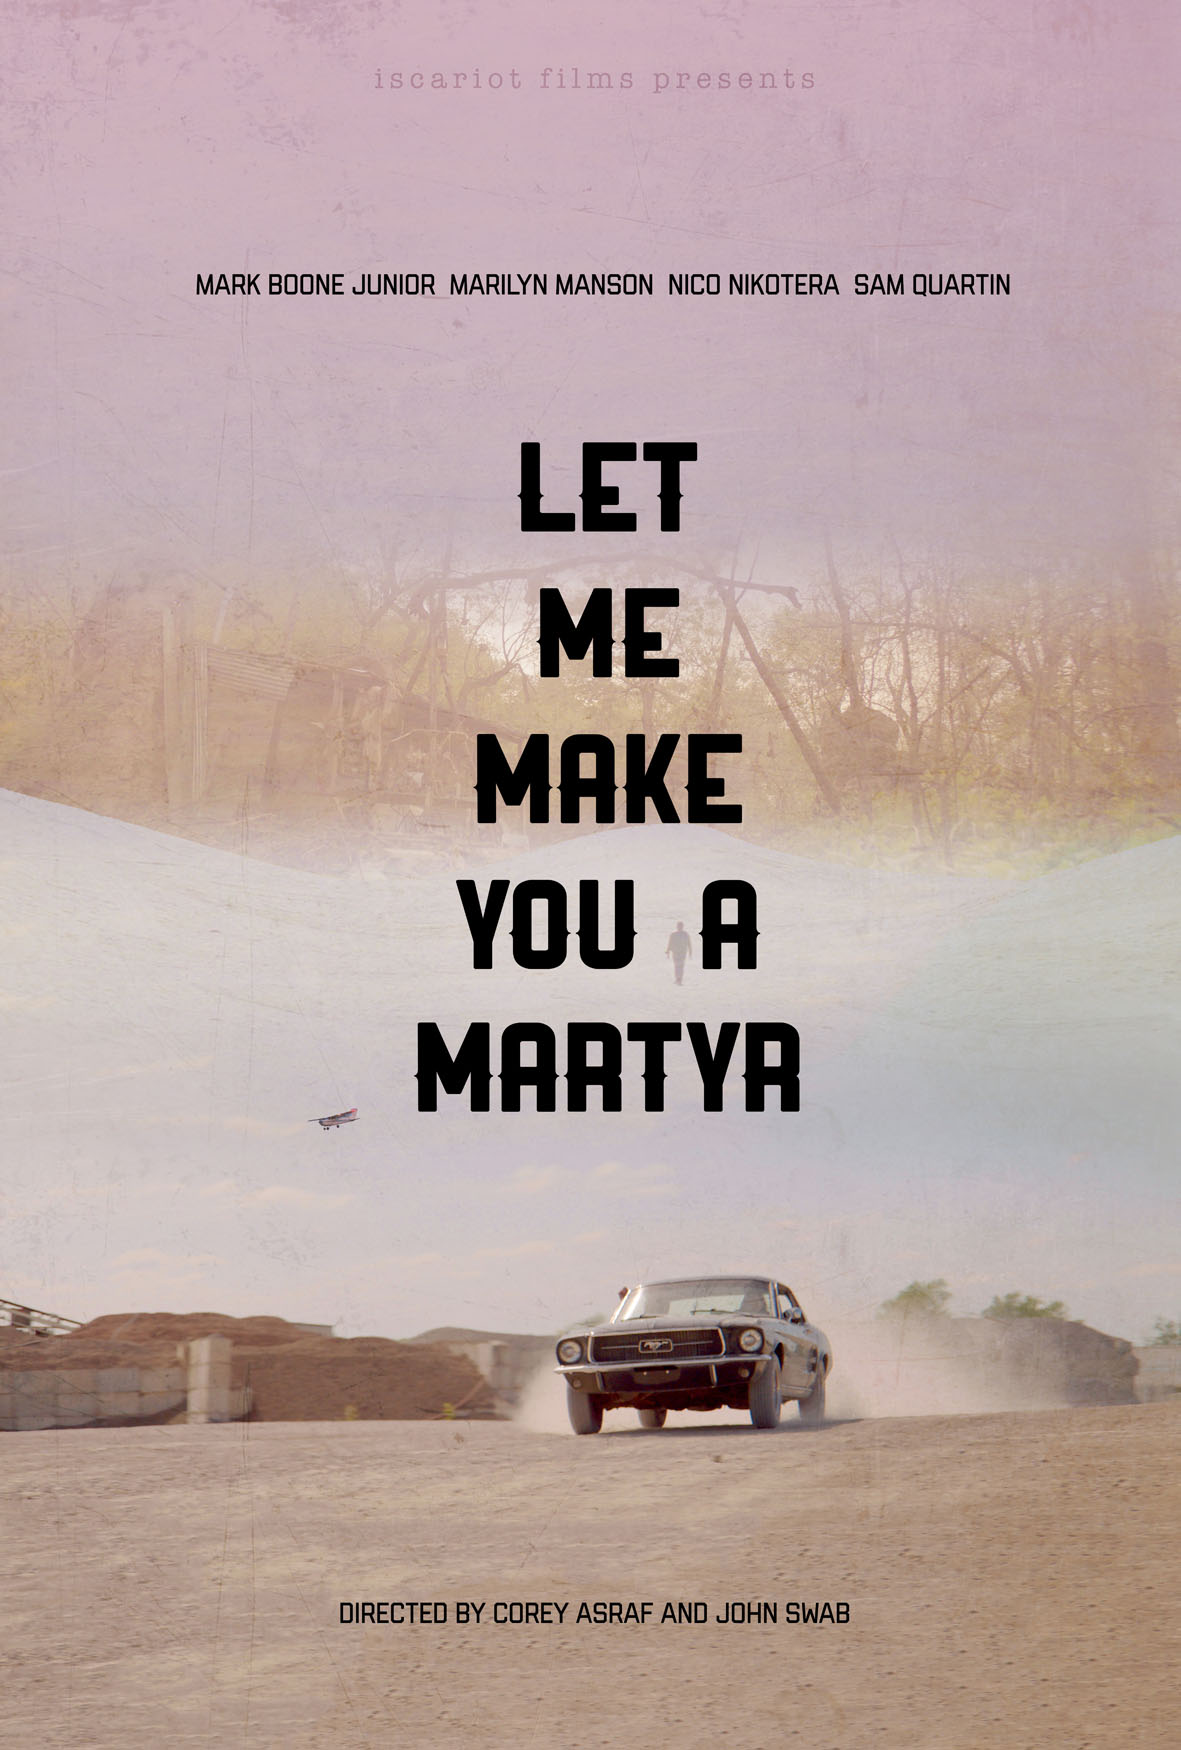 let-me-make-you-a-martyr-4